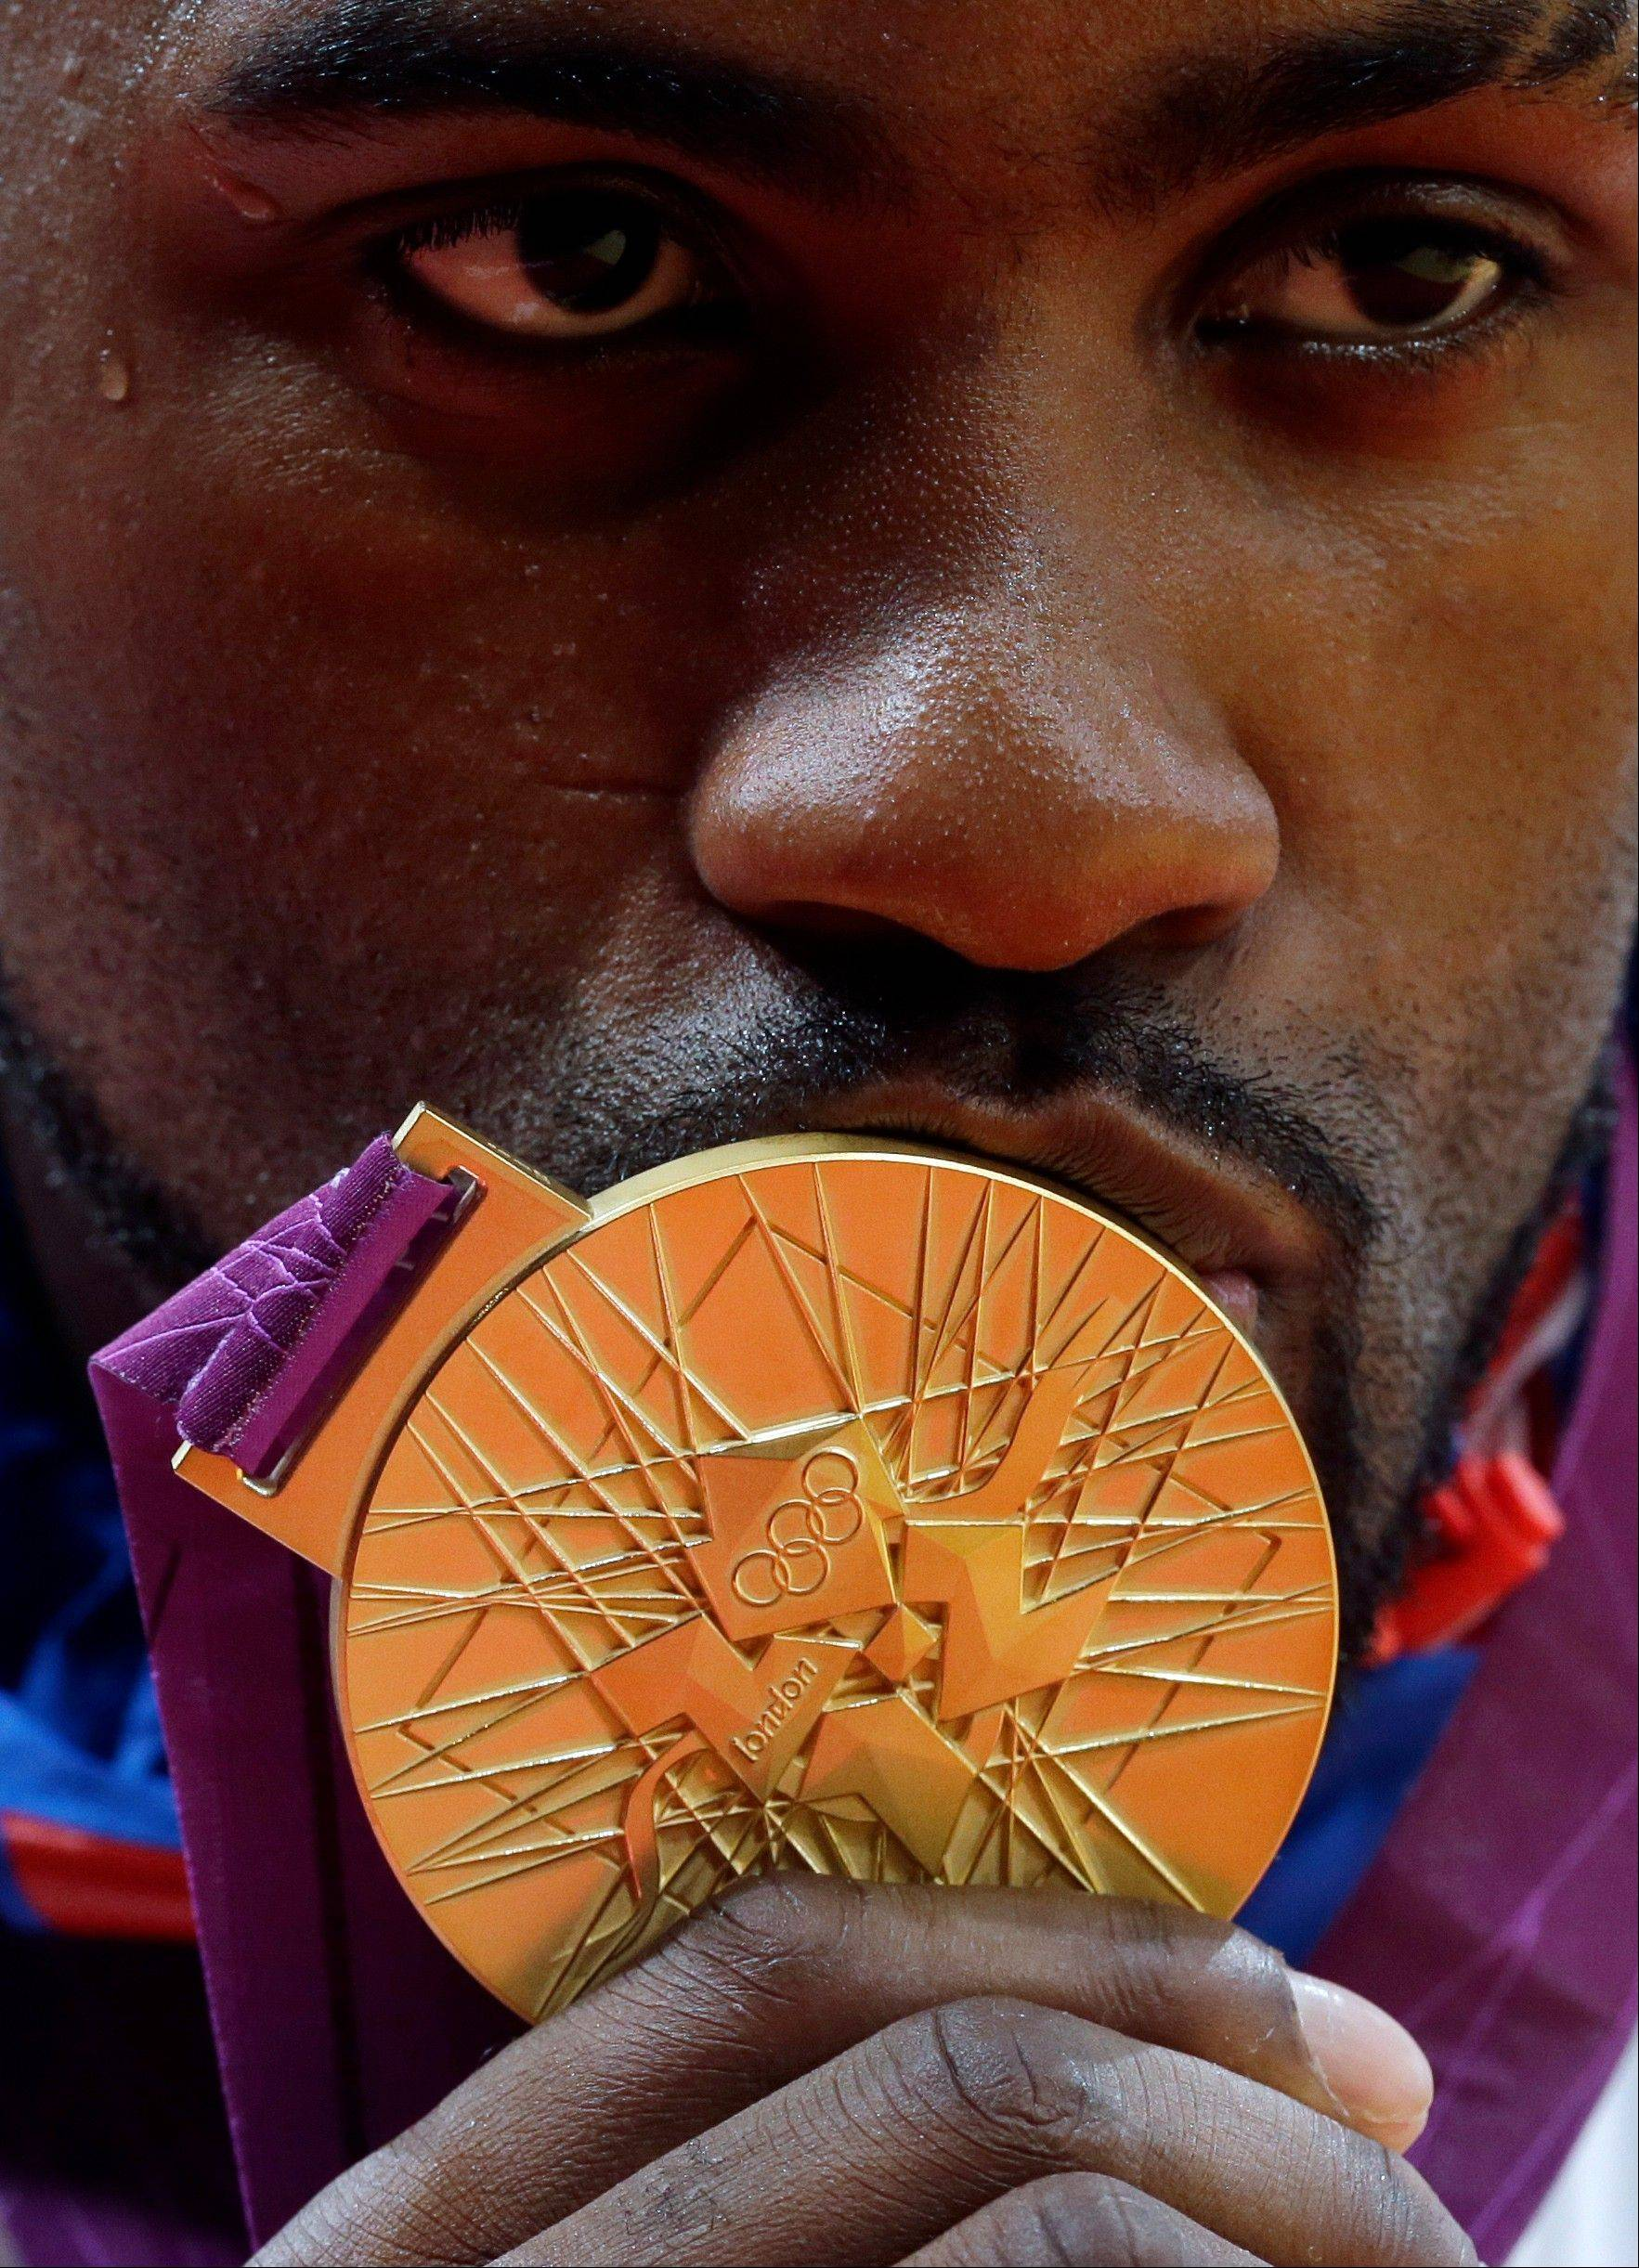 France's Teddy Riner kisses his gold medal for the men's over 100-kg judo competition at the 2012 Summer Olympics, Friday, Aug. 3, 2012, in London.